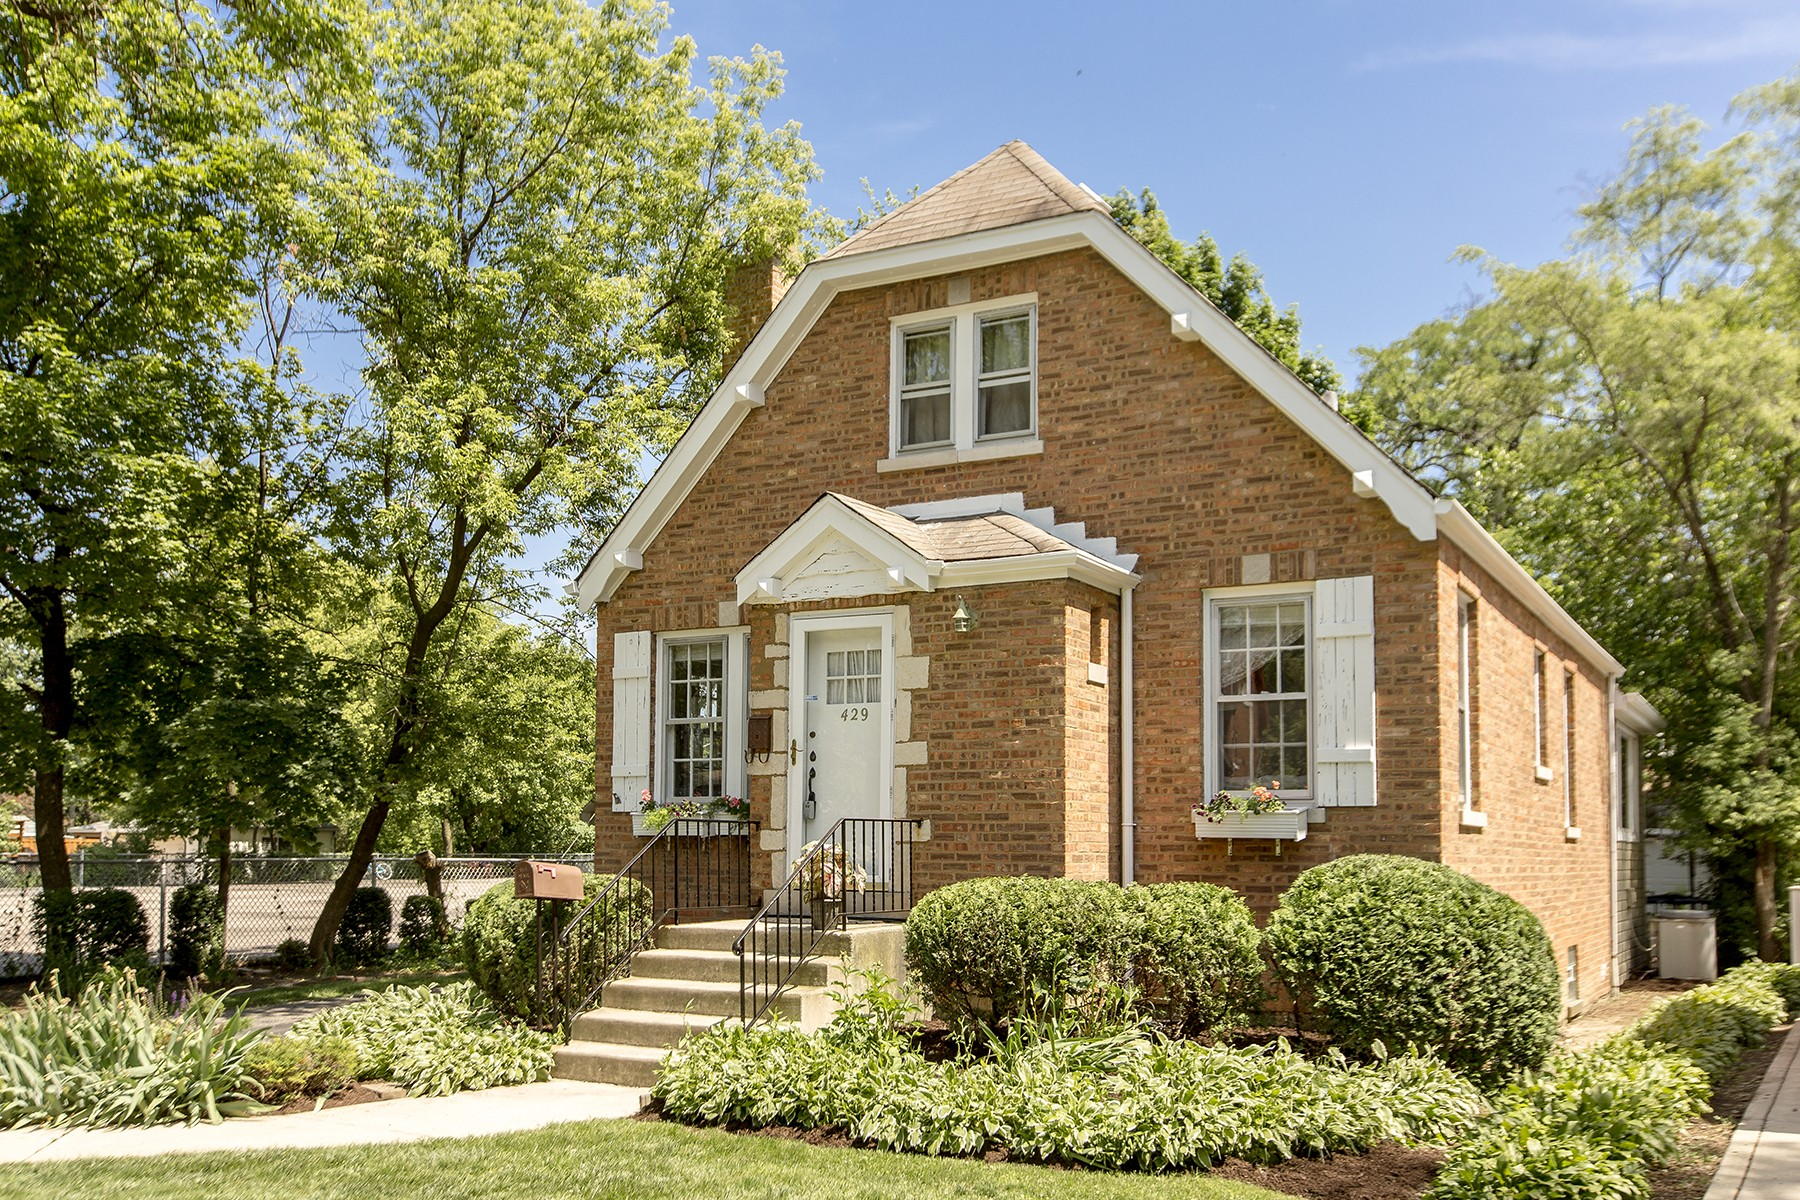 Single Family Home for Sale at Charming Home In The Historic Town Of Riverside 429 Loudon Road Riverside, Illinois, 60546 United States